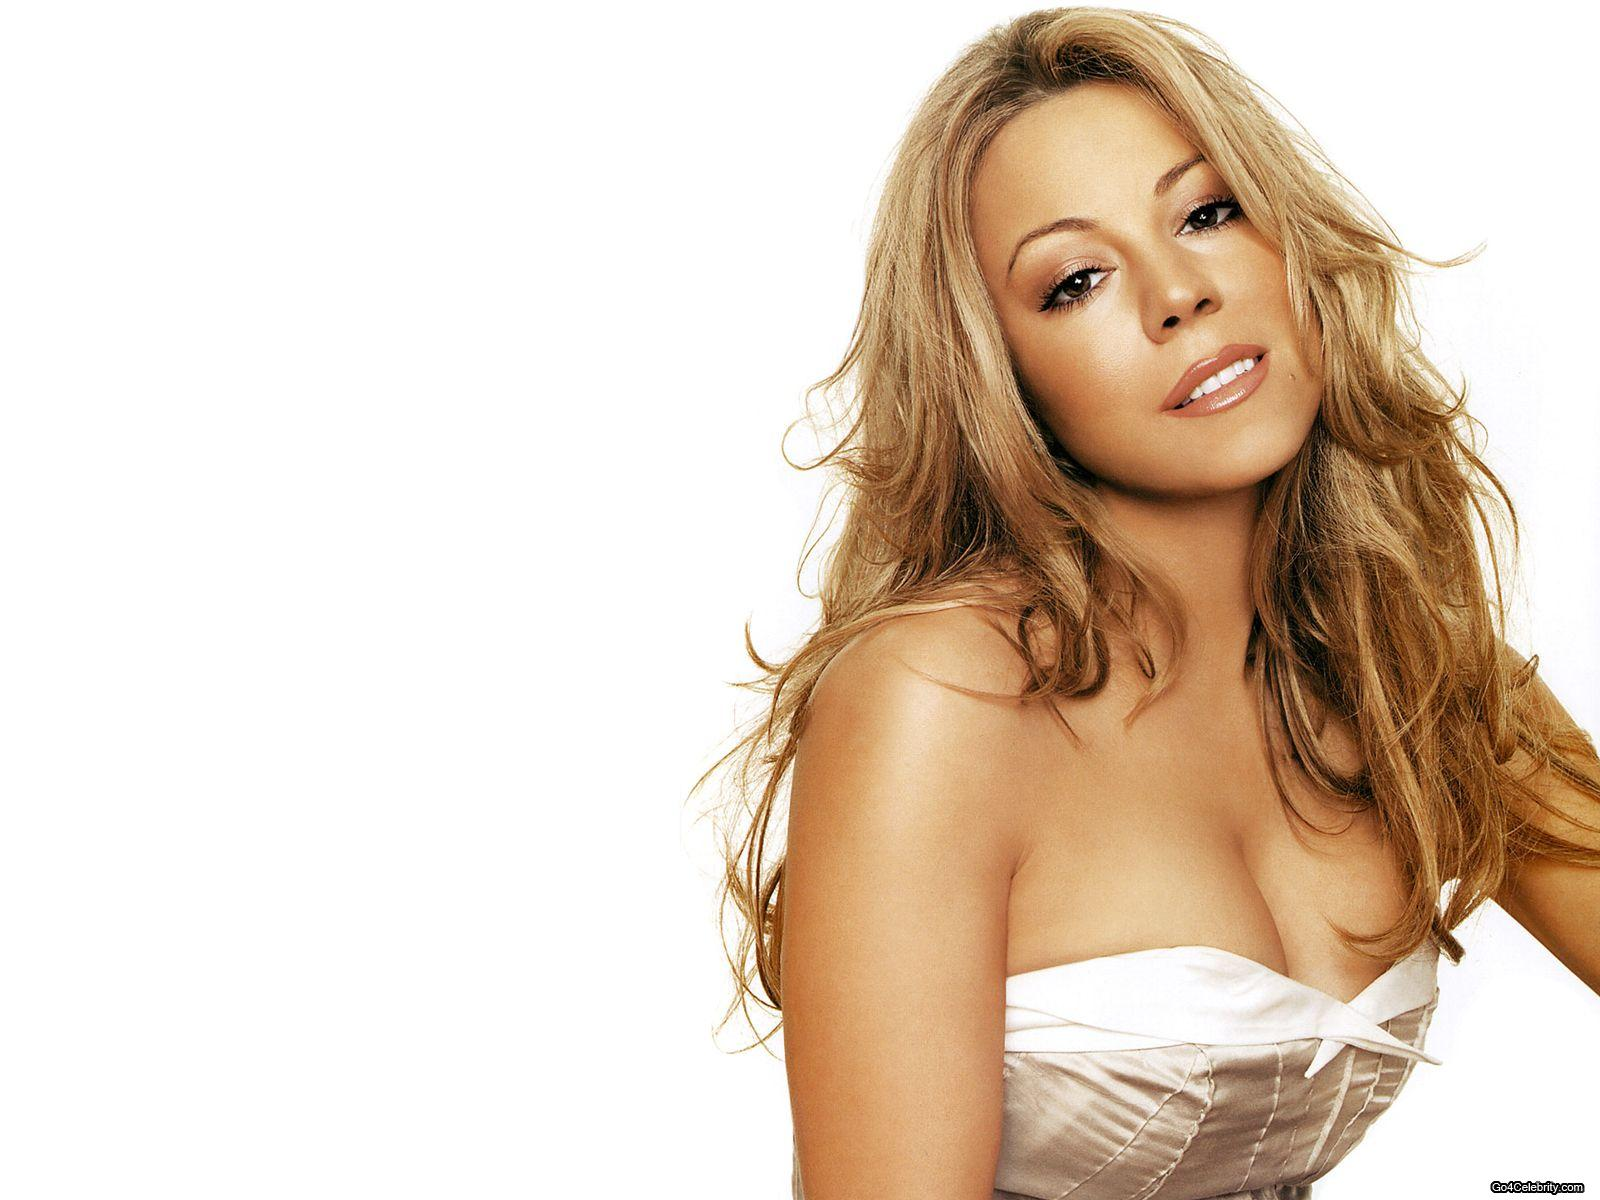 Mariah Carey - Mariah Carey Wallpaper (583150) - Fanpop